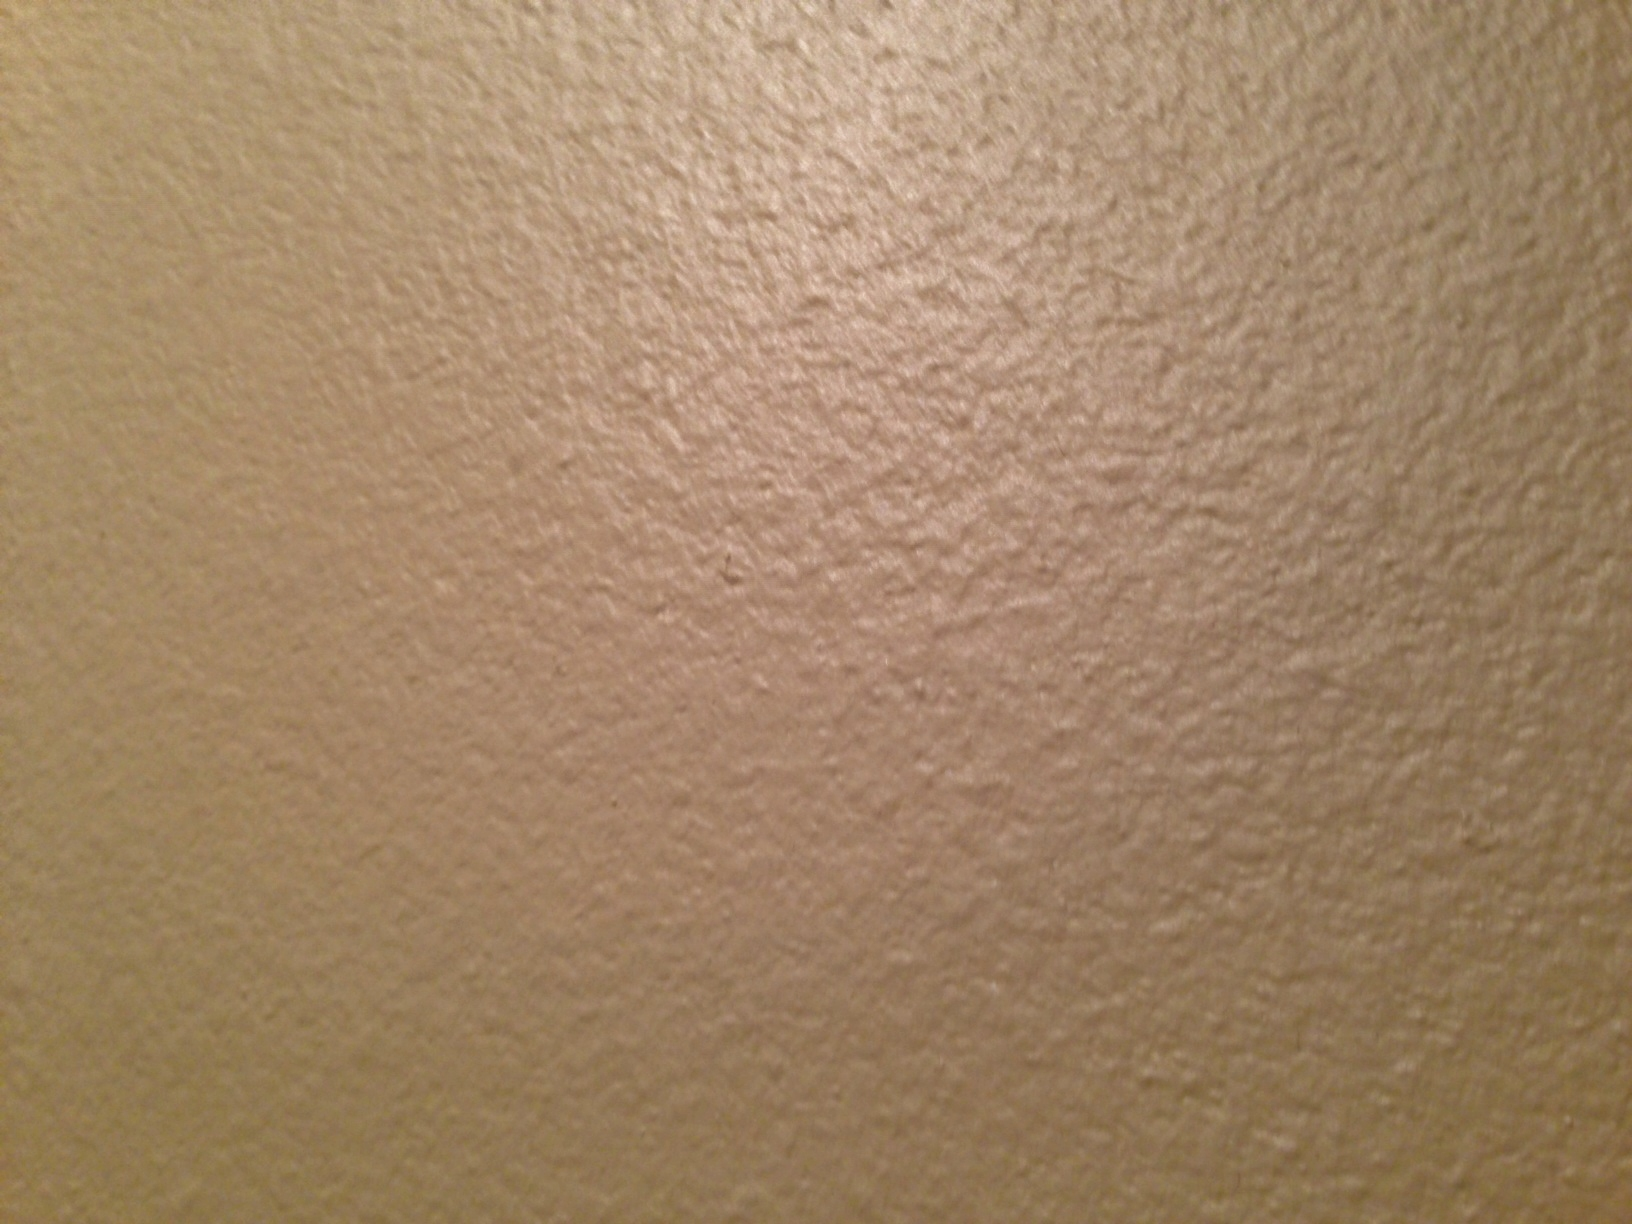 Matching Paint To White Drywall